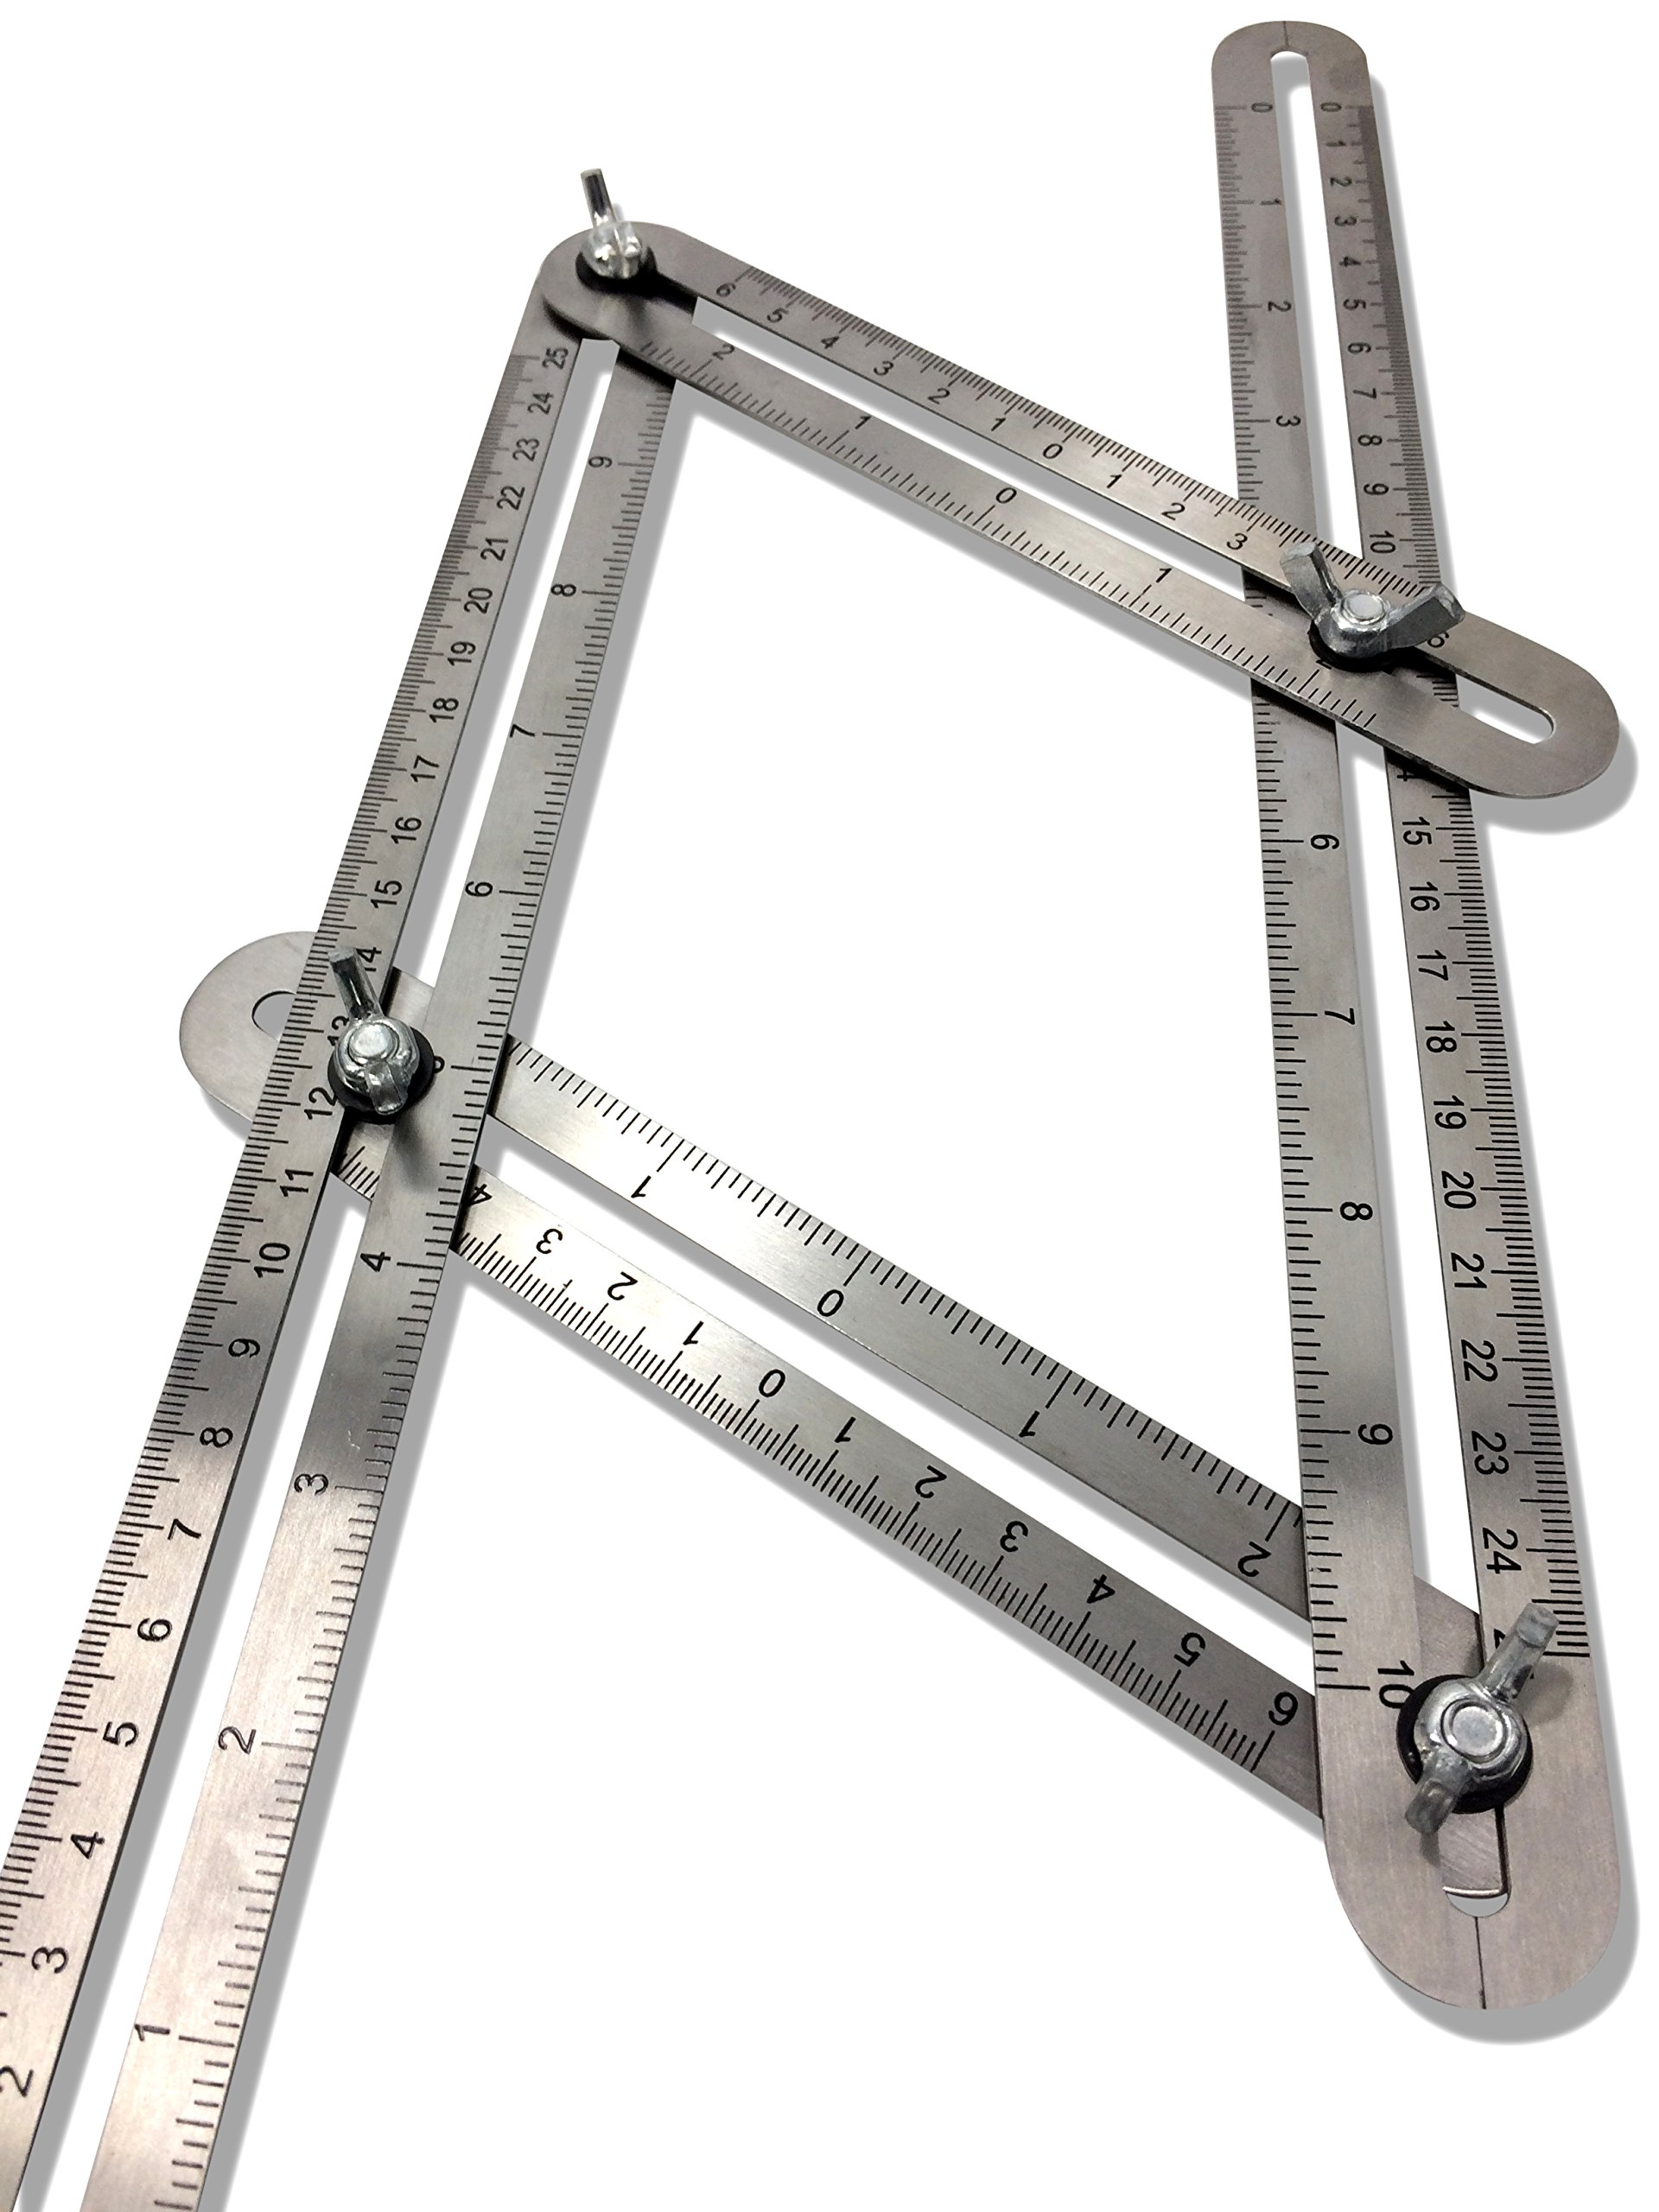 Upgraded Stainless Steel Multi-Angle Measuring Ruler Angle-izer Template Tool Construction Precision Steel Foldable For Carpenters Builders DIY 7Projects Measure Make Bulls Eyes Arches By ALLANGLES by ALLANGLES (Image #6)